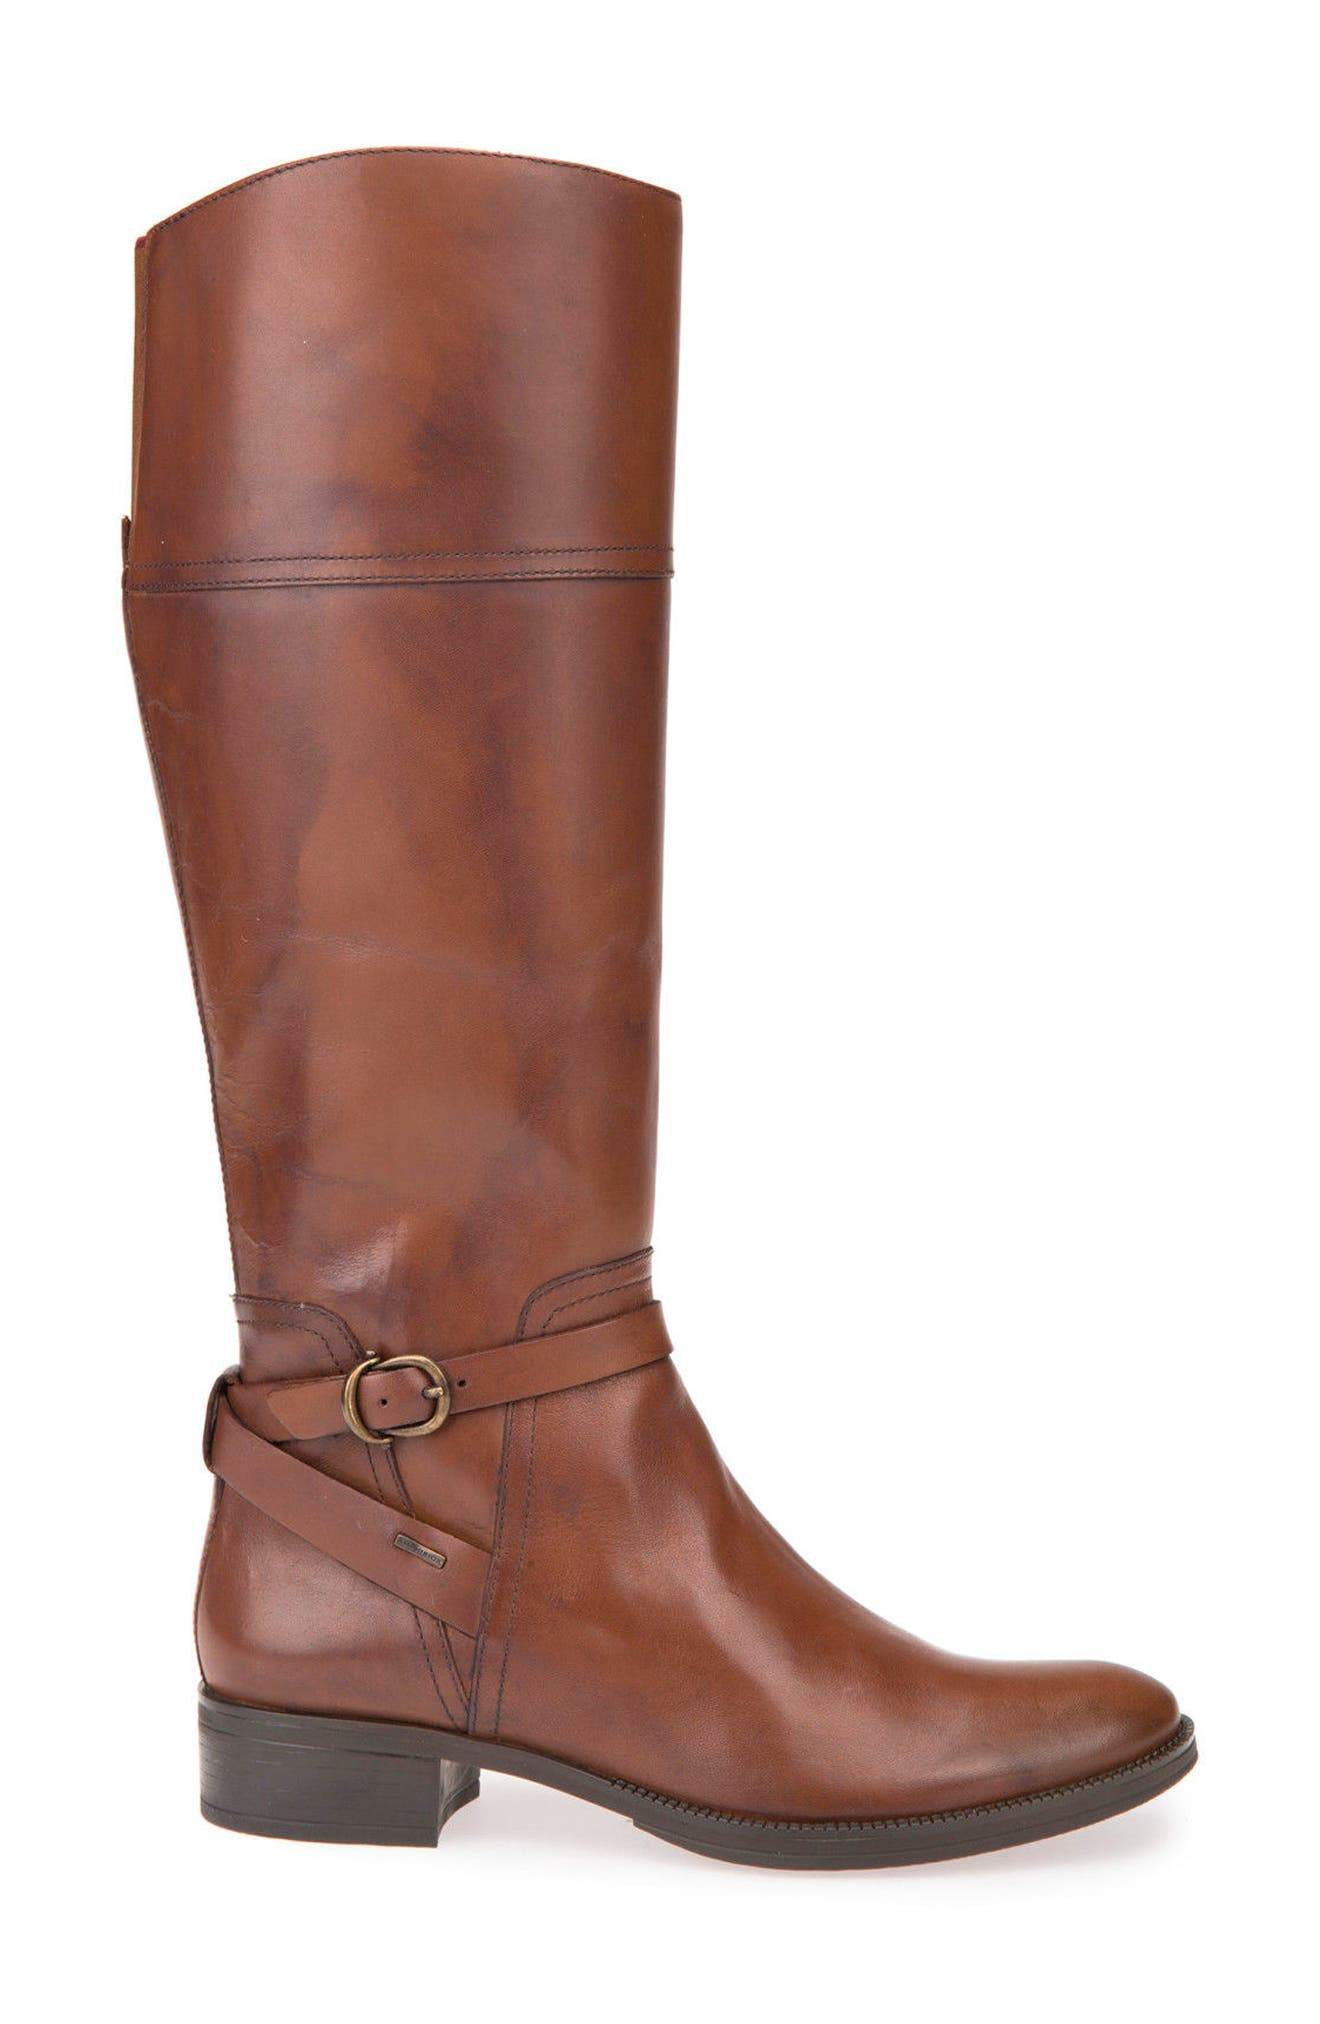 Mendin ABX Waterproof Riding Boot,                             Alternate thumbnail 3, color,                             Brown Leather